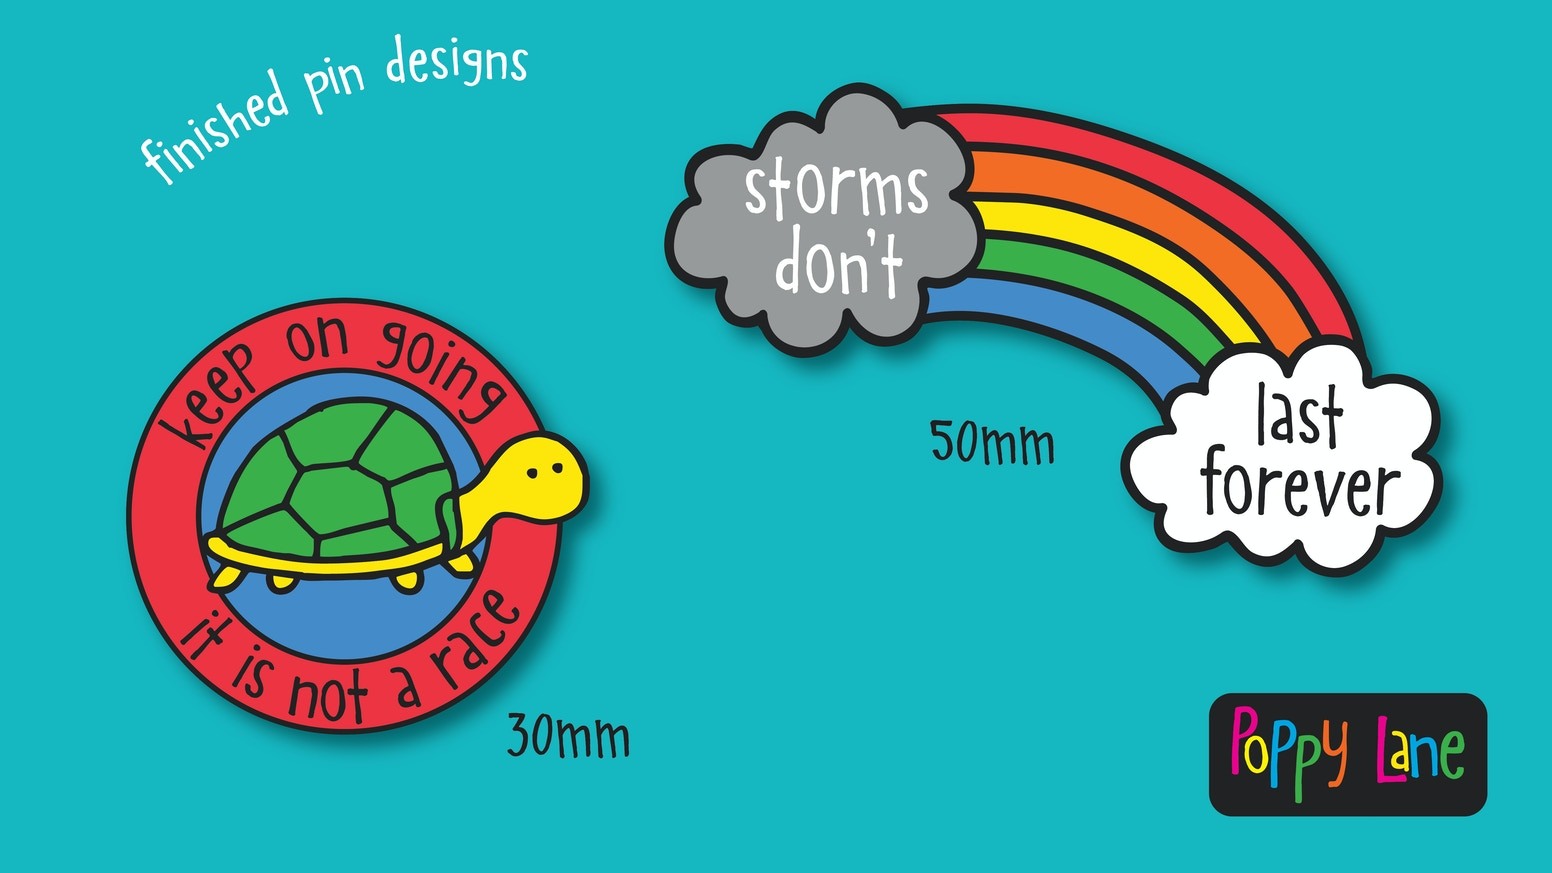 Enamel Pins: Bright colourful pins with positive messages by